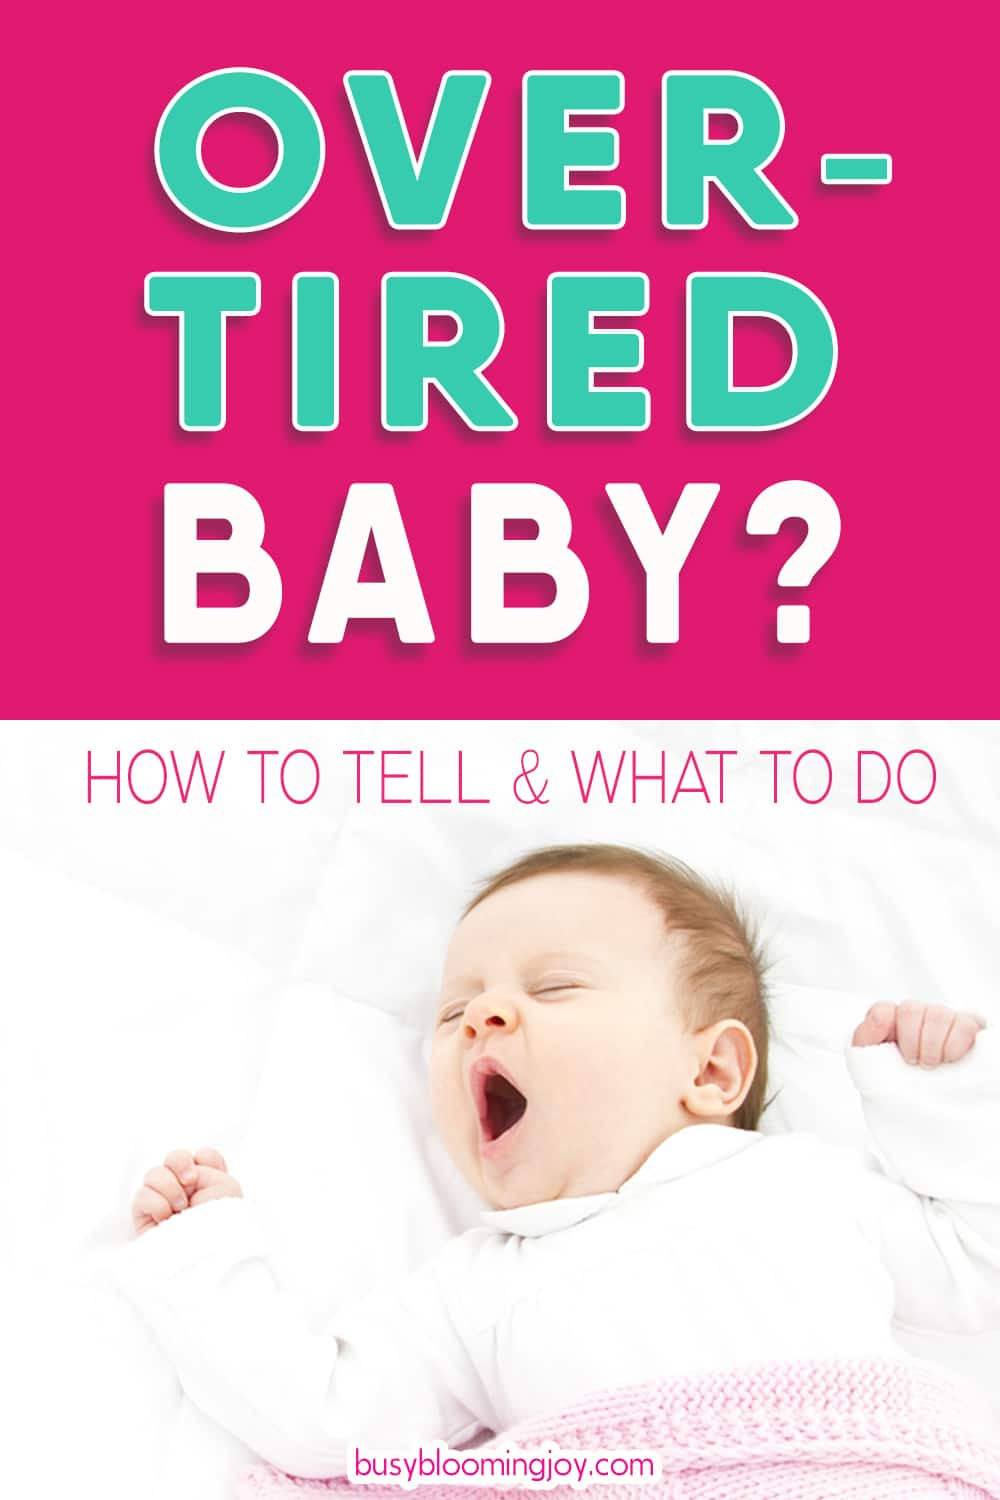 If baby is overtired she will struggle with short naps and won't sleep well. Watch baby awake times to avoid the overtired baby.